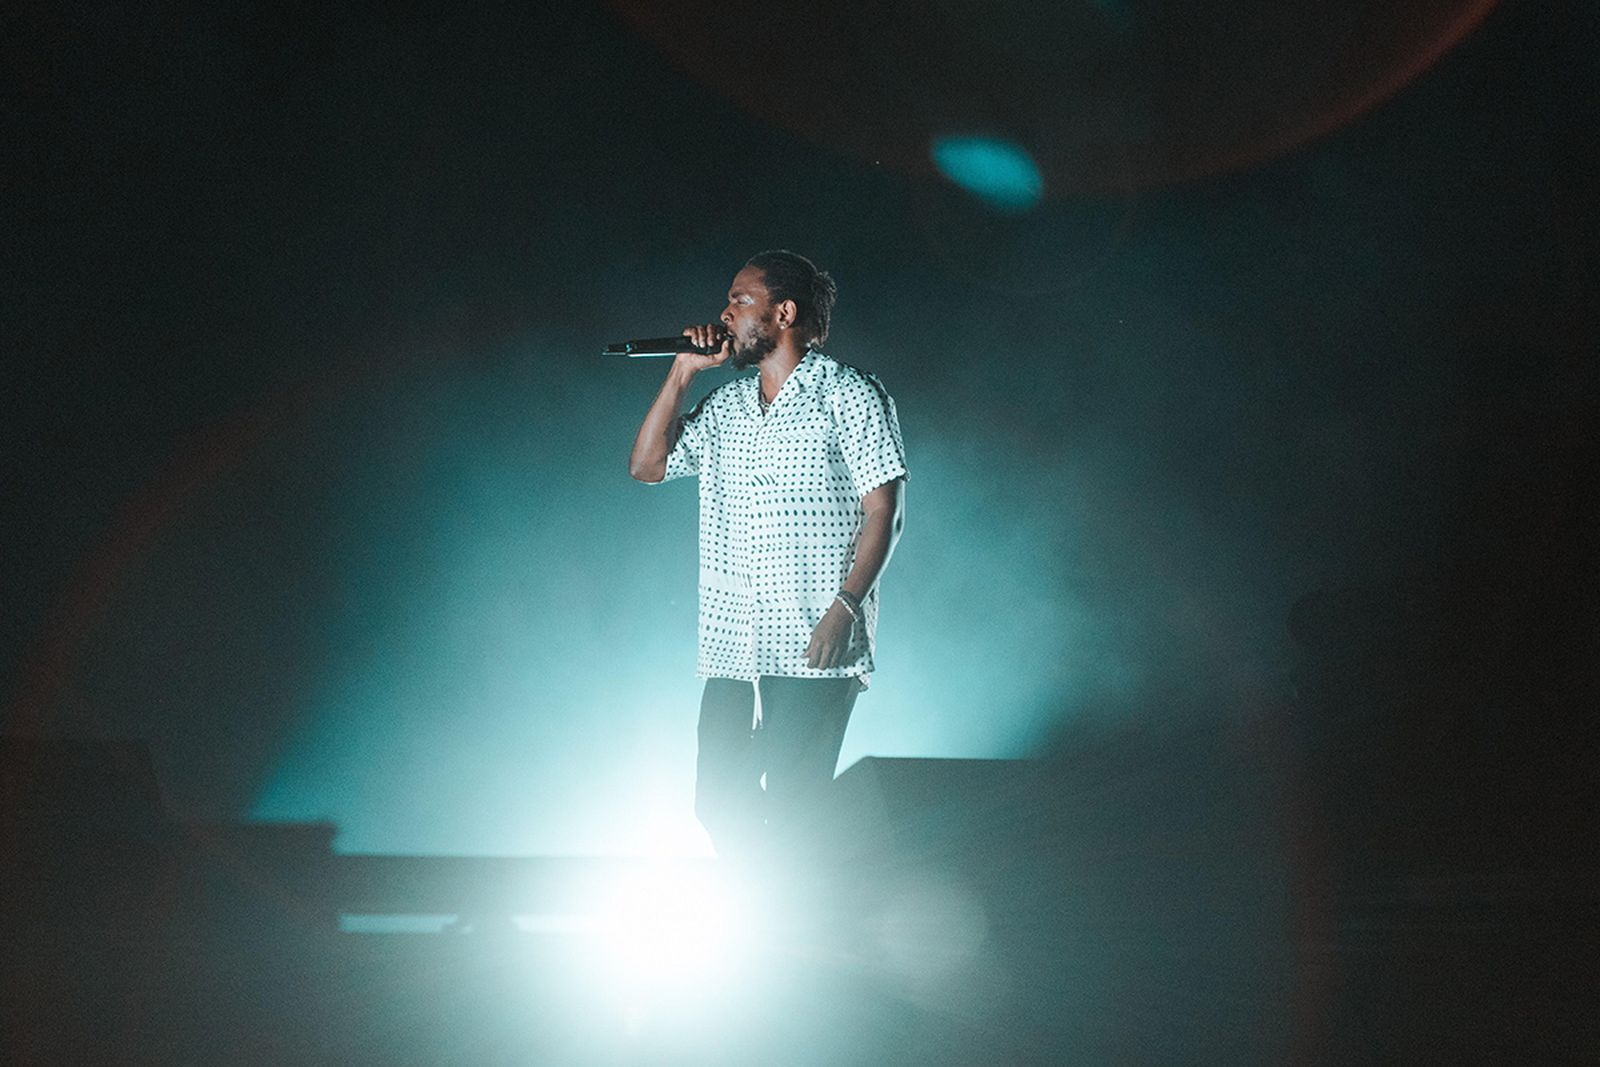 pimp-butterfly-effect-kendricks-masterpiece-changed-culture-lives-careers-02